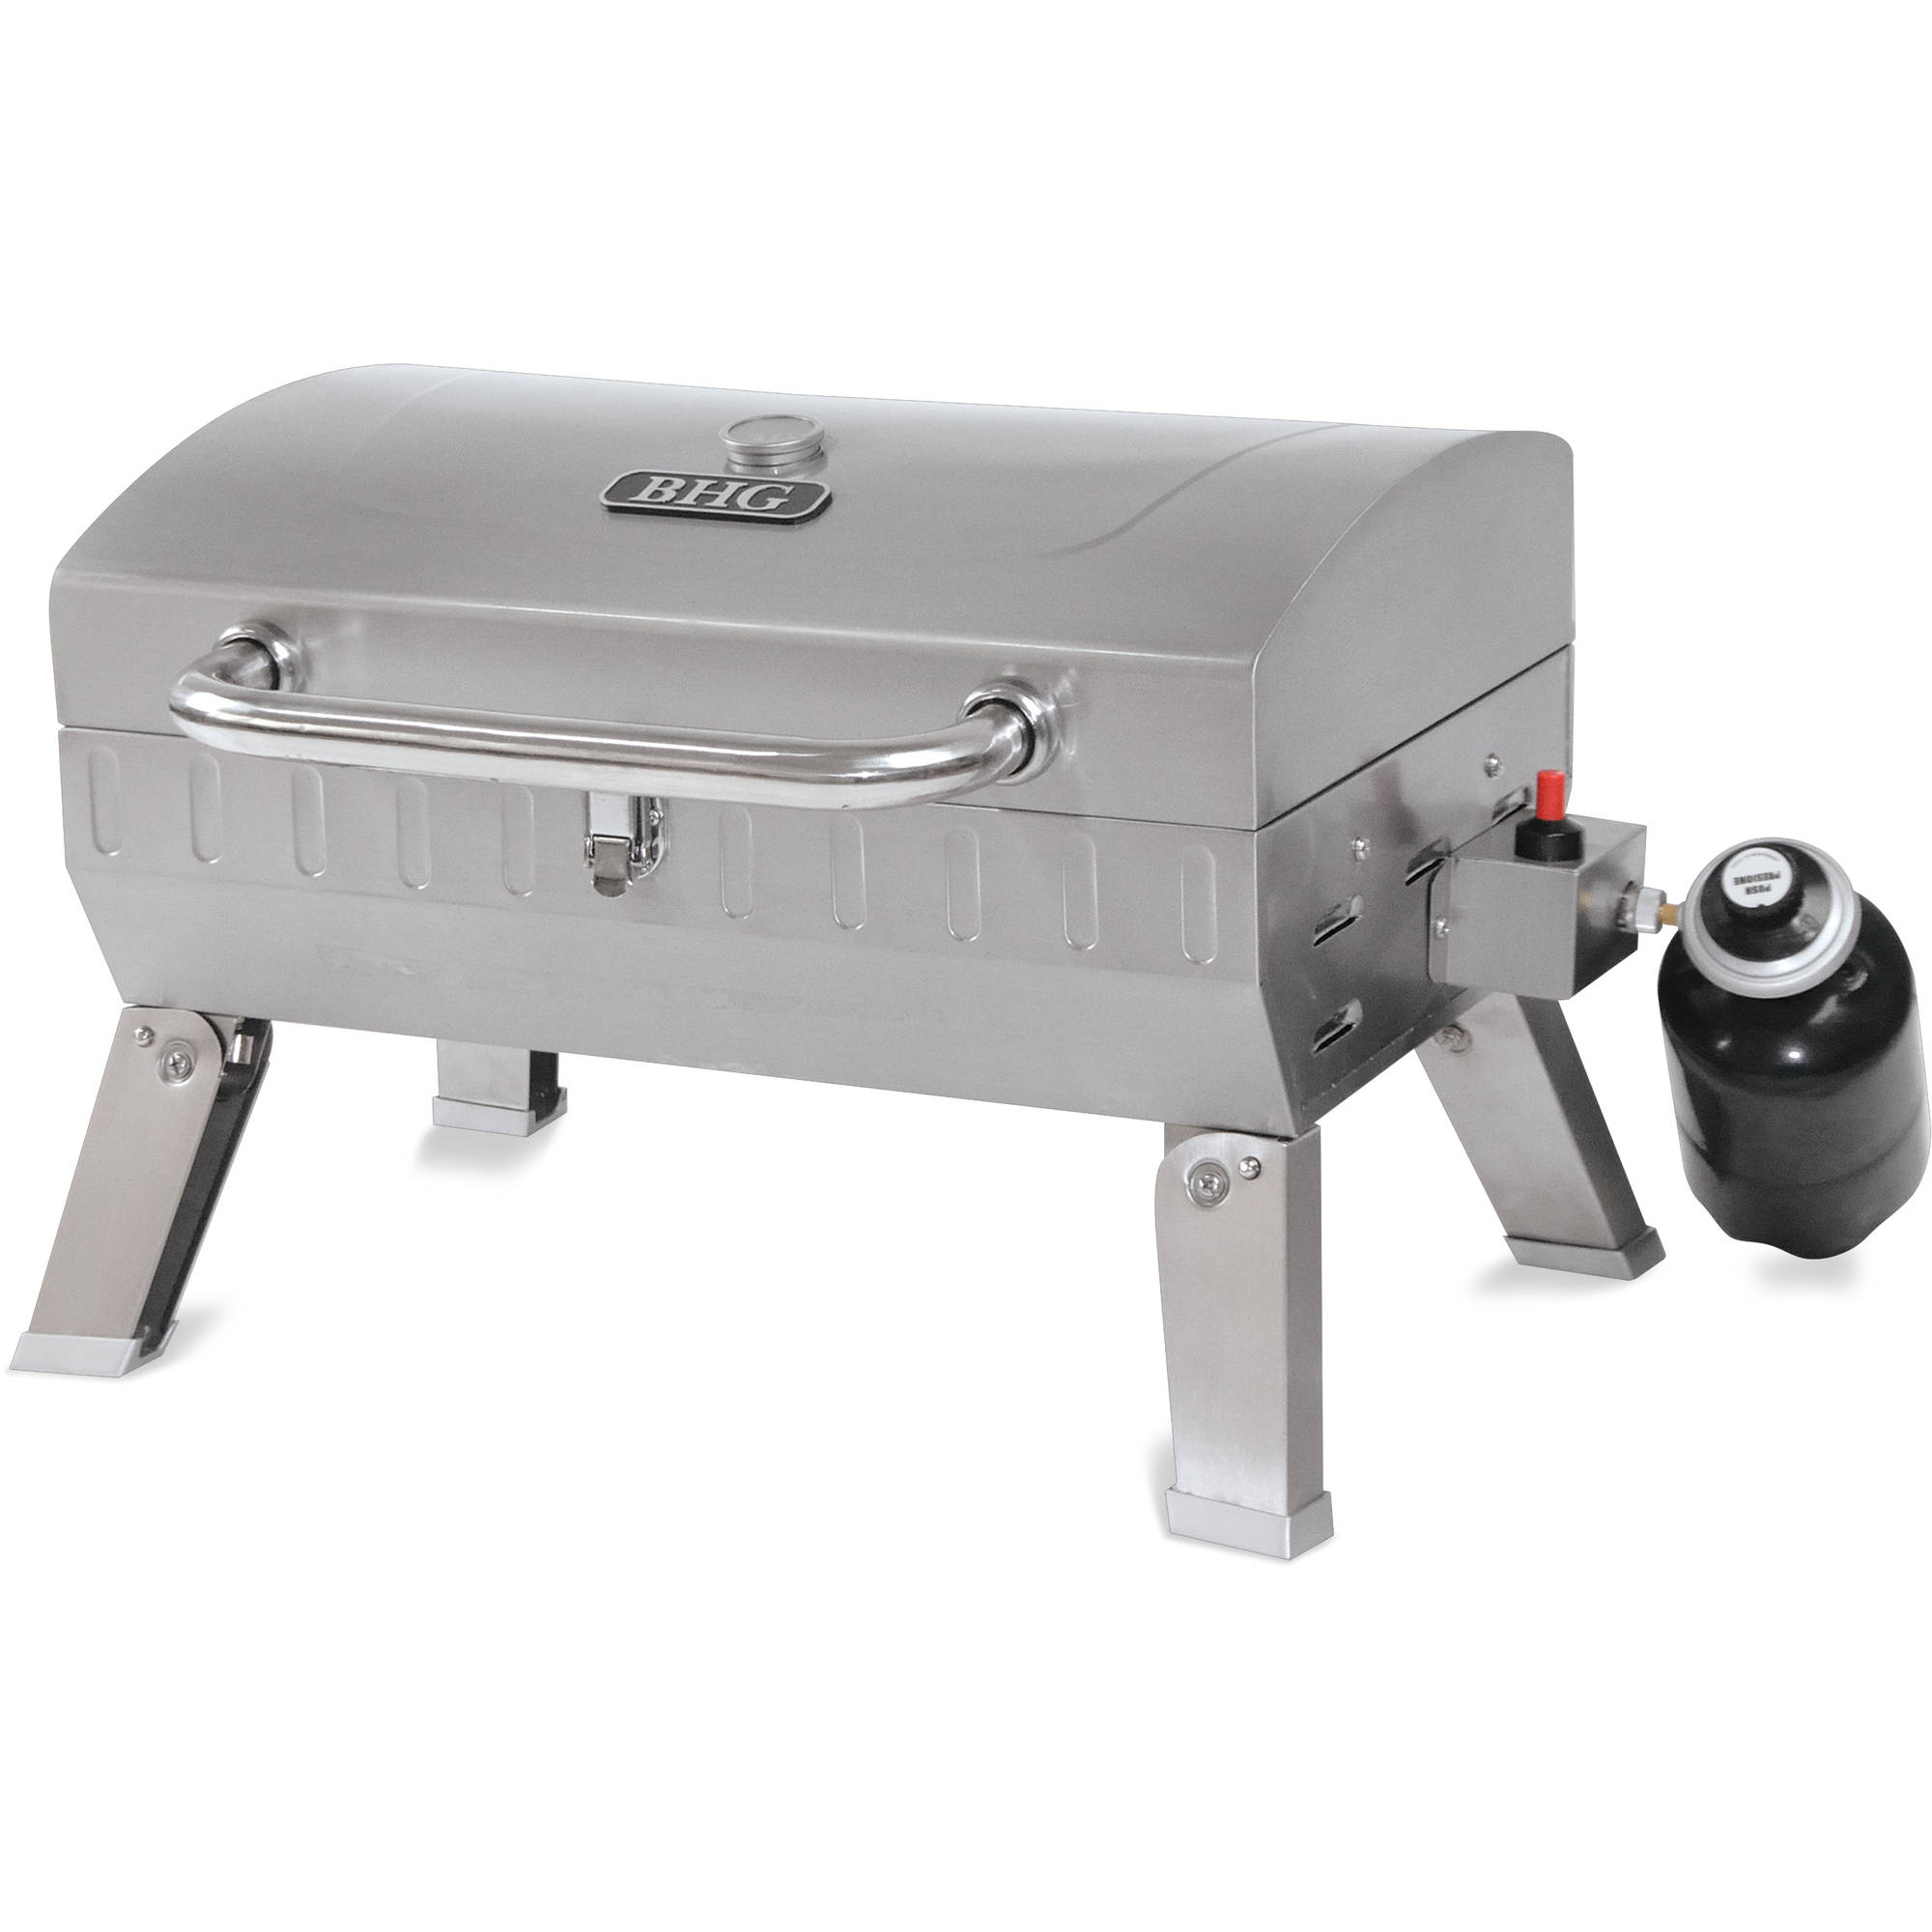 Better Homes And Gardens Premium Portable Gas Grill   Walmart.com